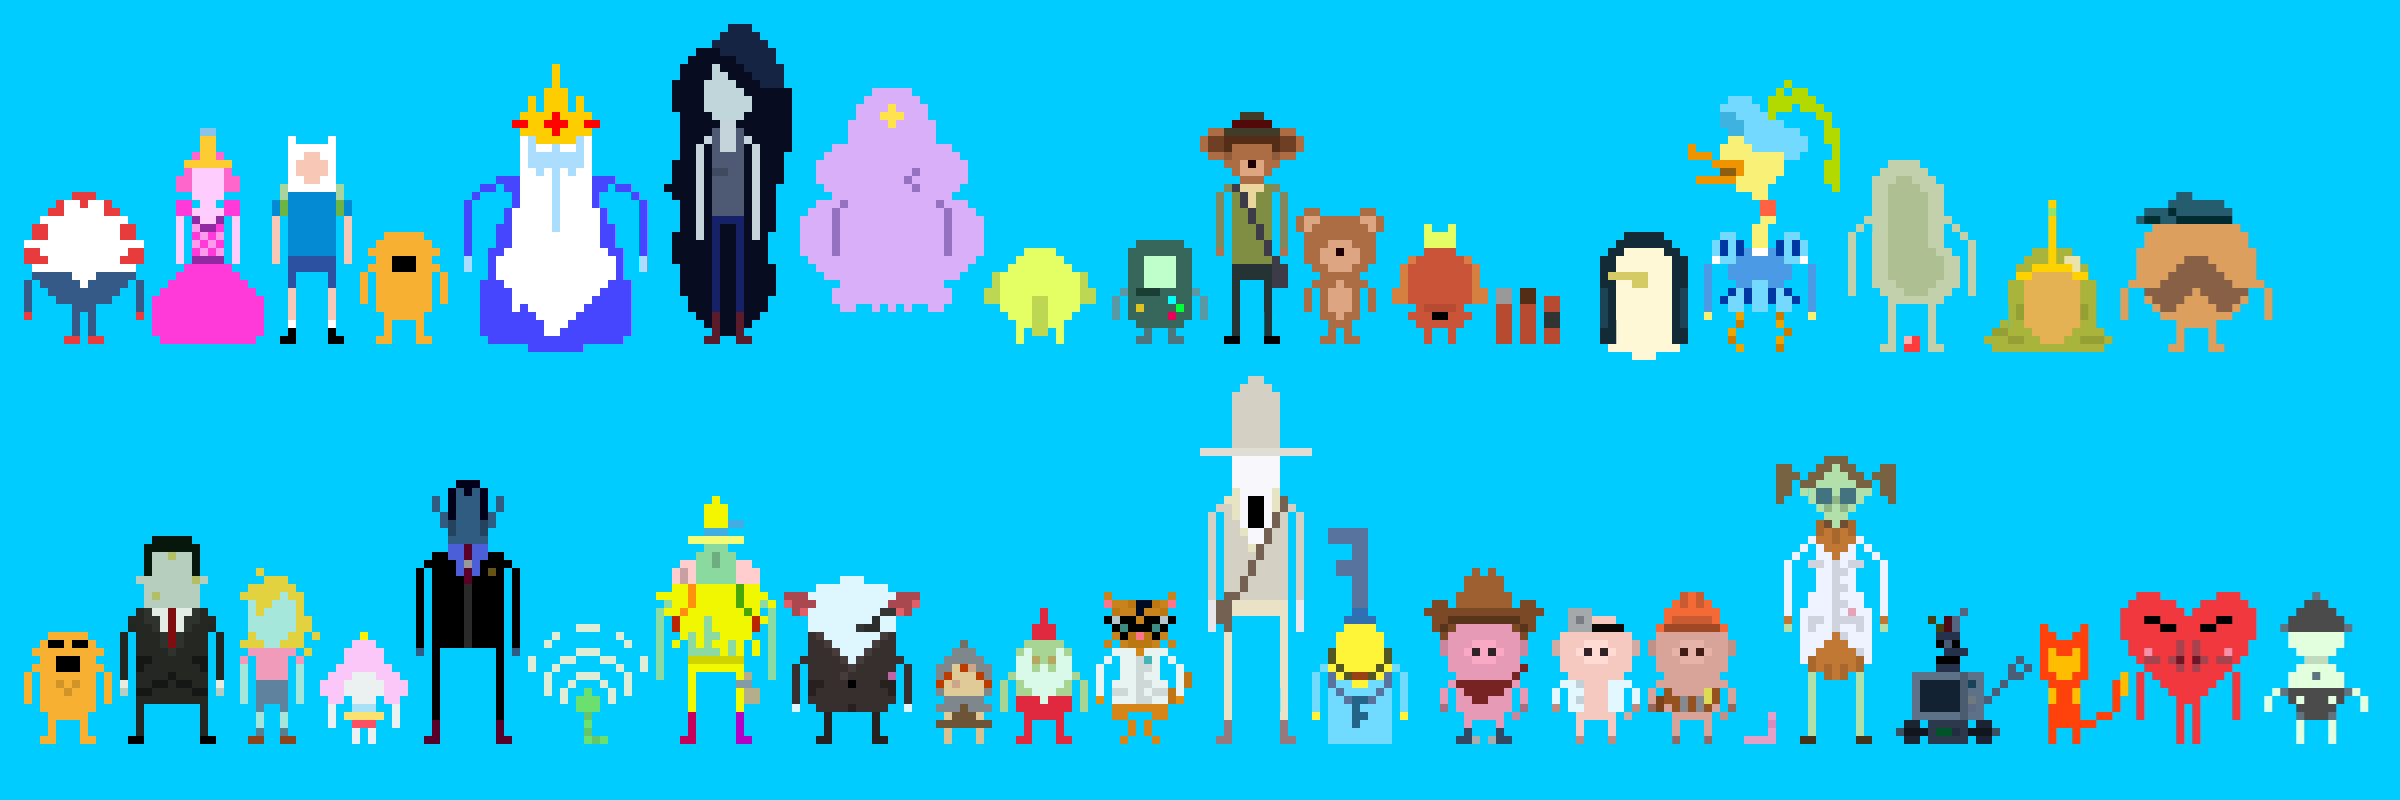 Adventure Time 8bit cast 3 by supajackle